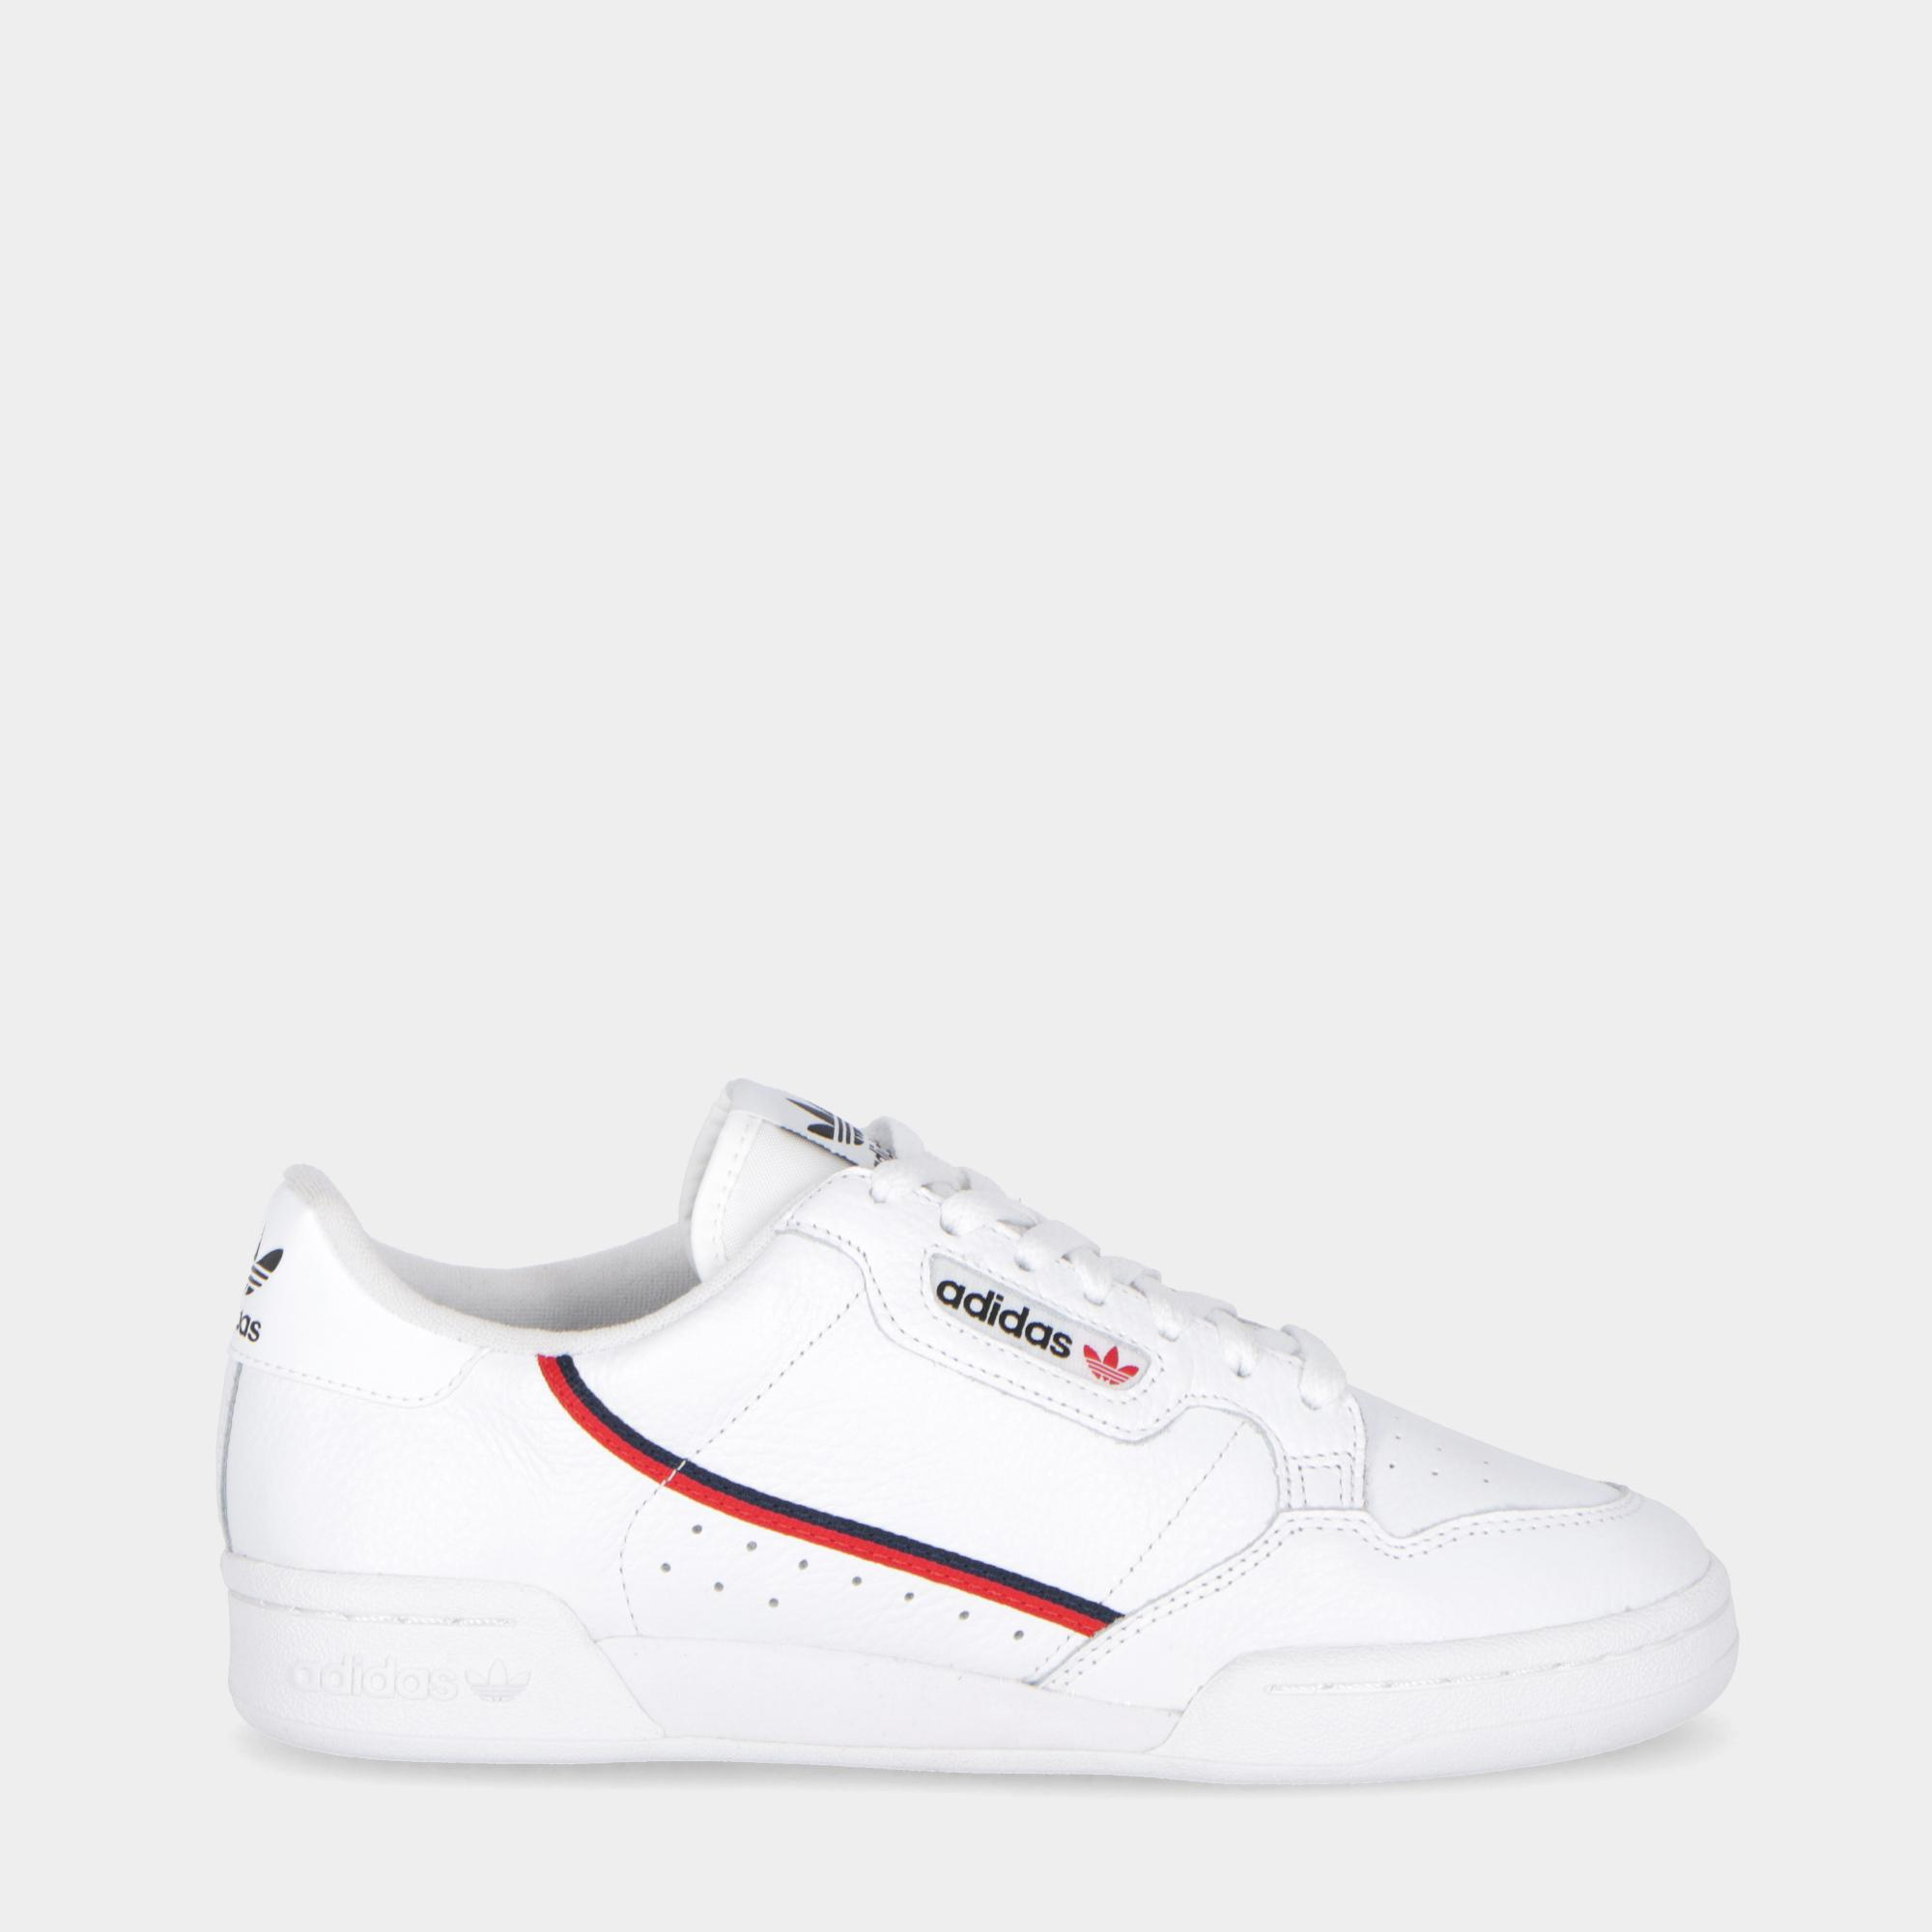 low priced b3513 2d9ab Adidas Continental 80 White scarlet navy